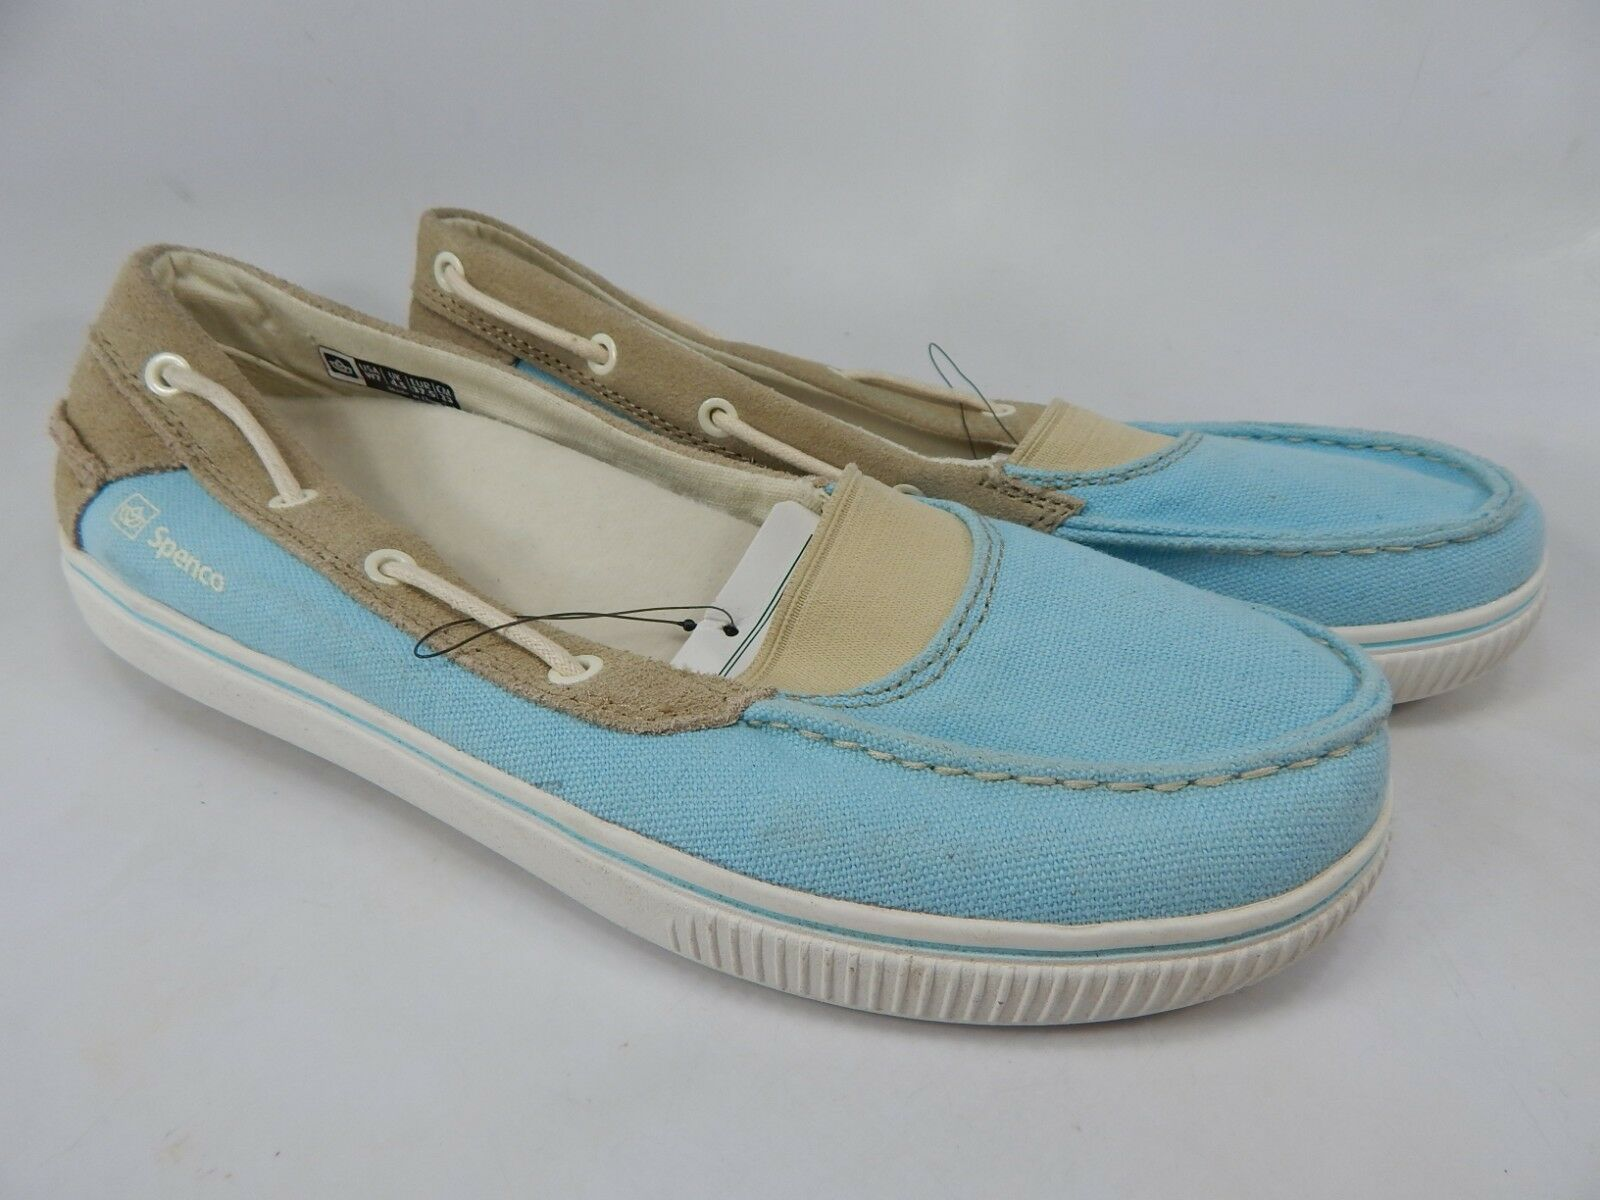 Spenco CVO S3 Size US 7 M (B) Women's Sneakers Casual shoes Light bluee